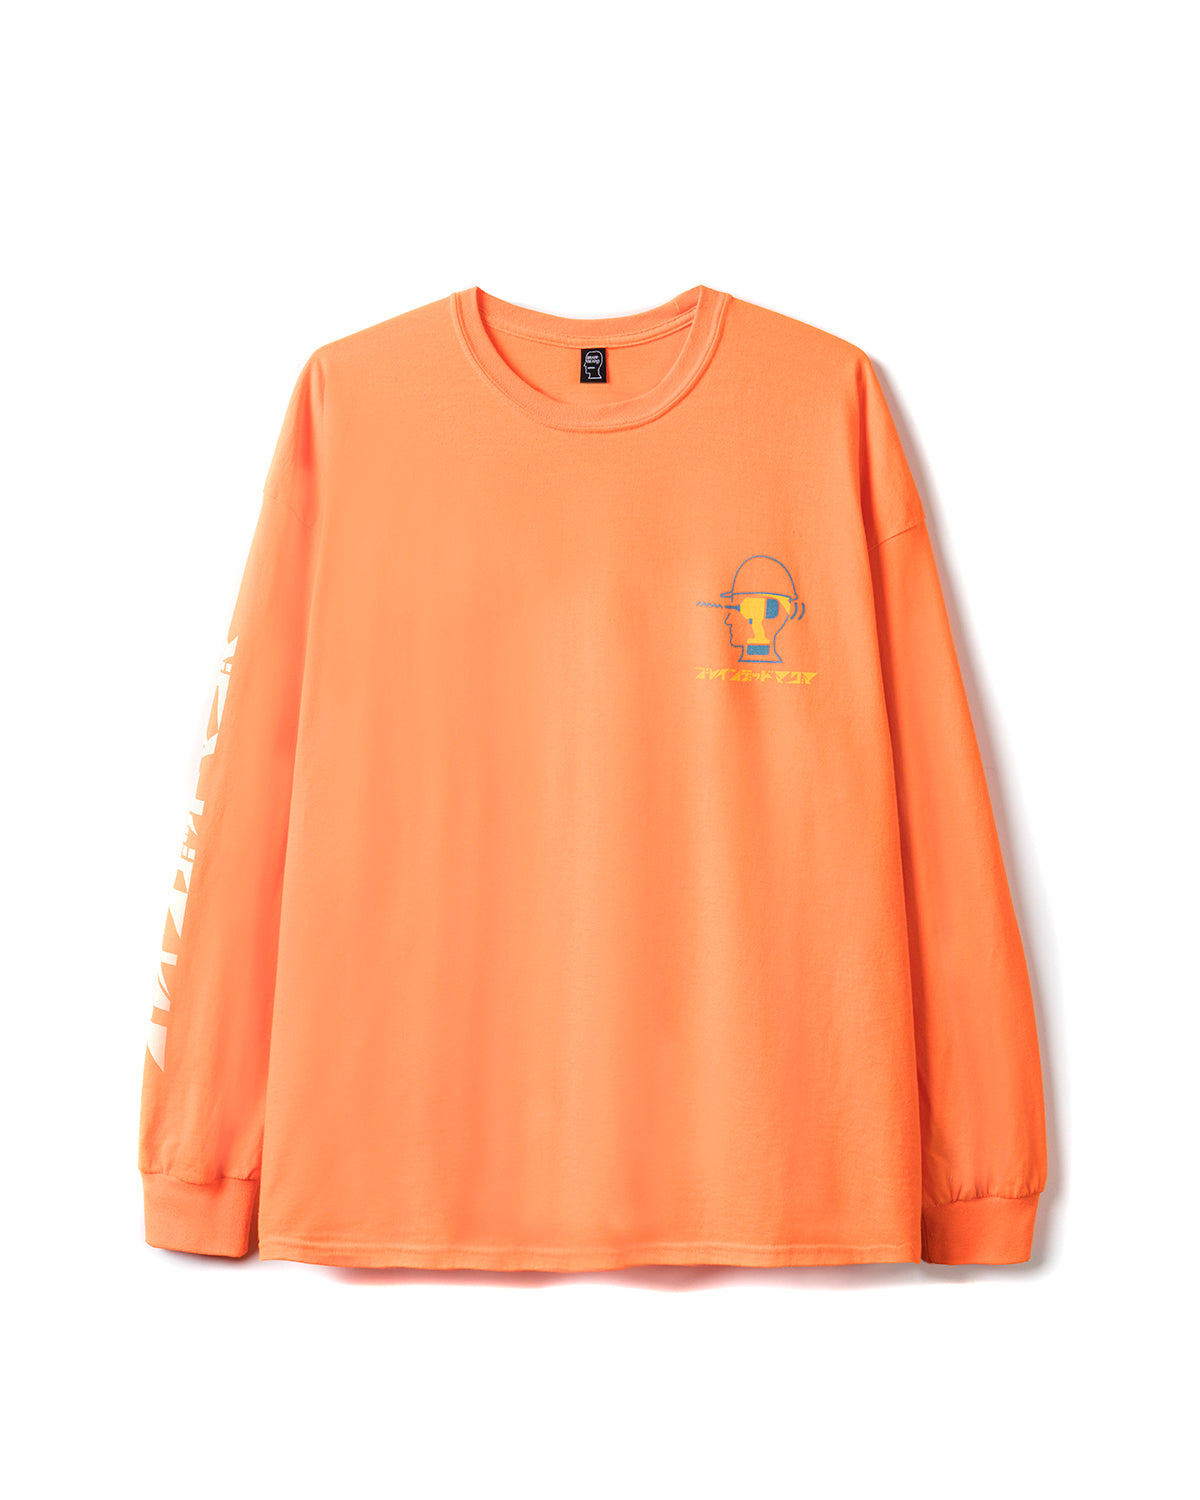 Magma x Braindead Long Sleeve Tee - Orange